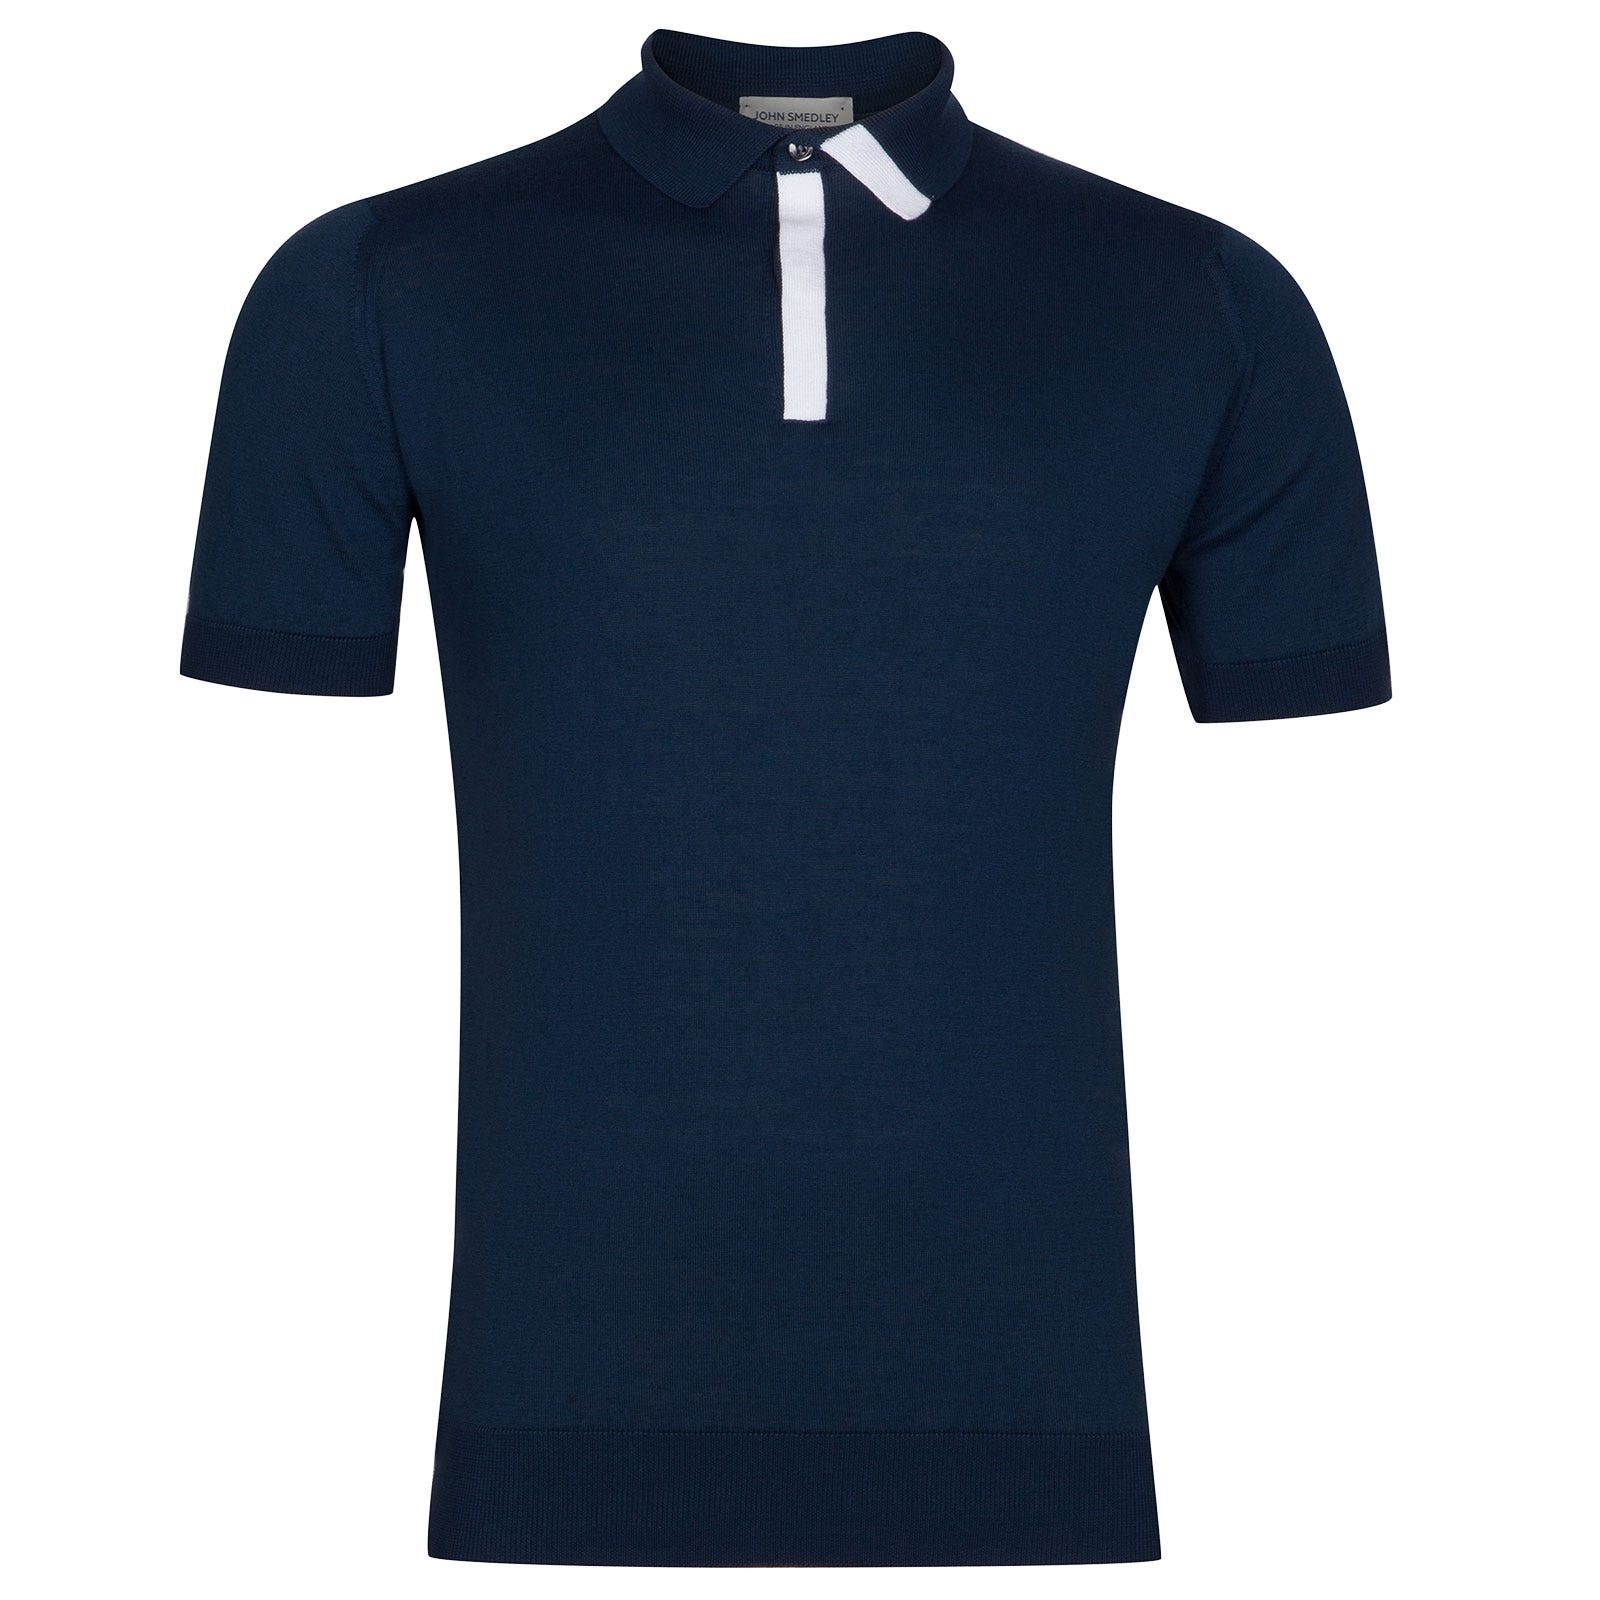 John Smedley Duxford Sea Island Cotton Polo Shirt in Indigo-LGE